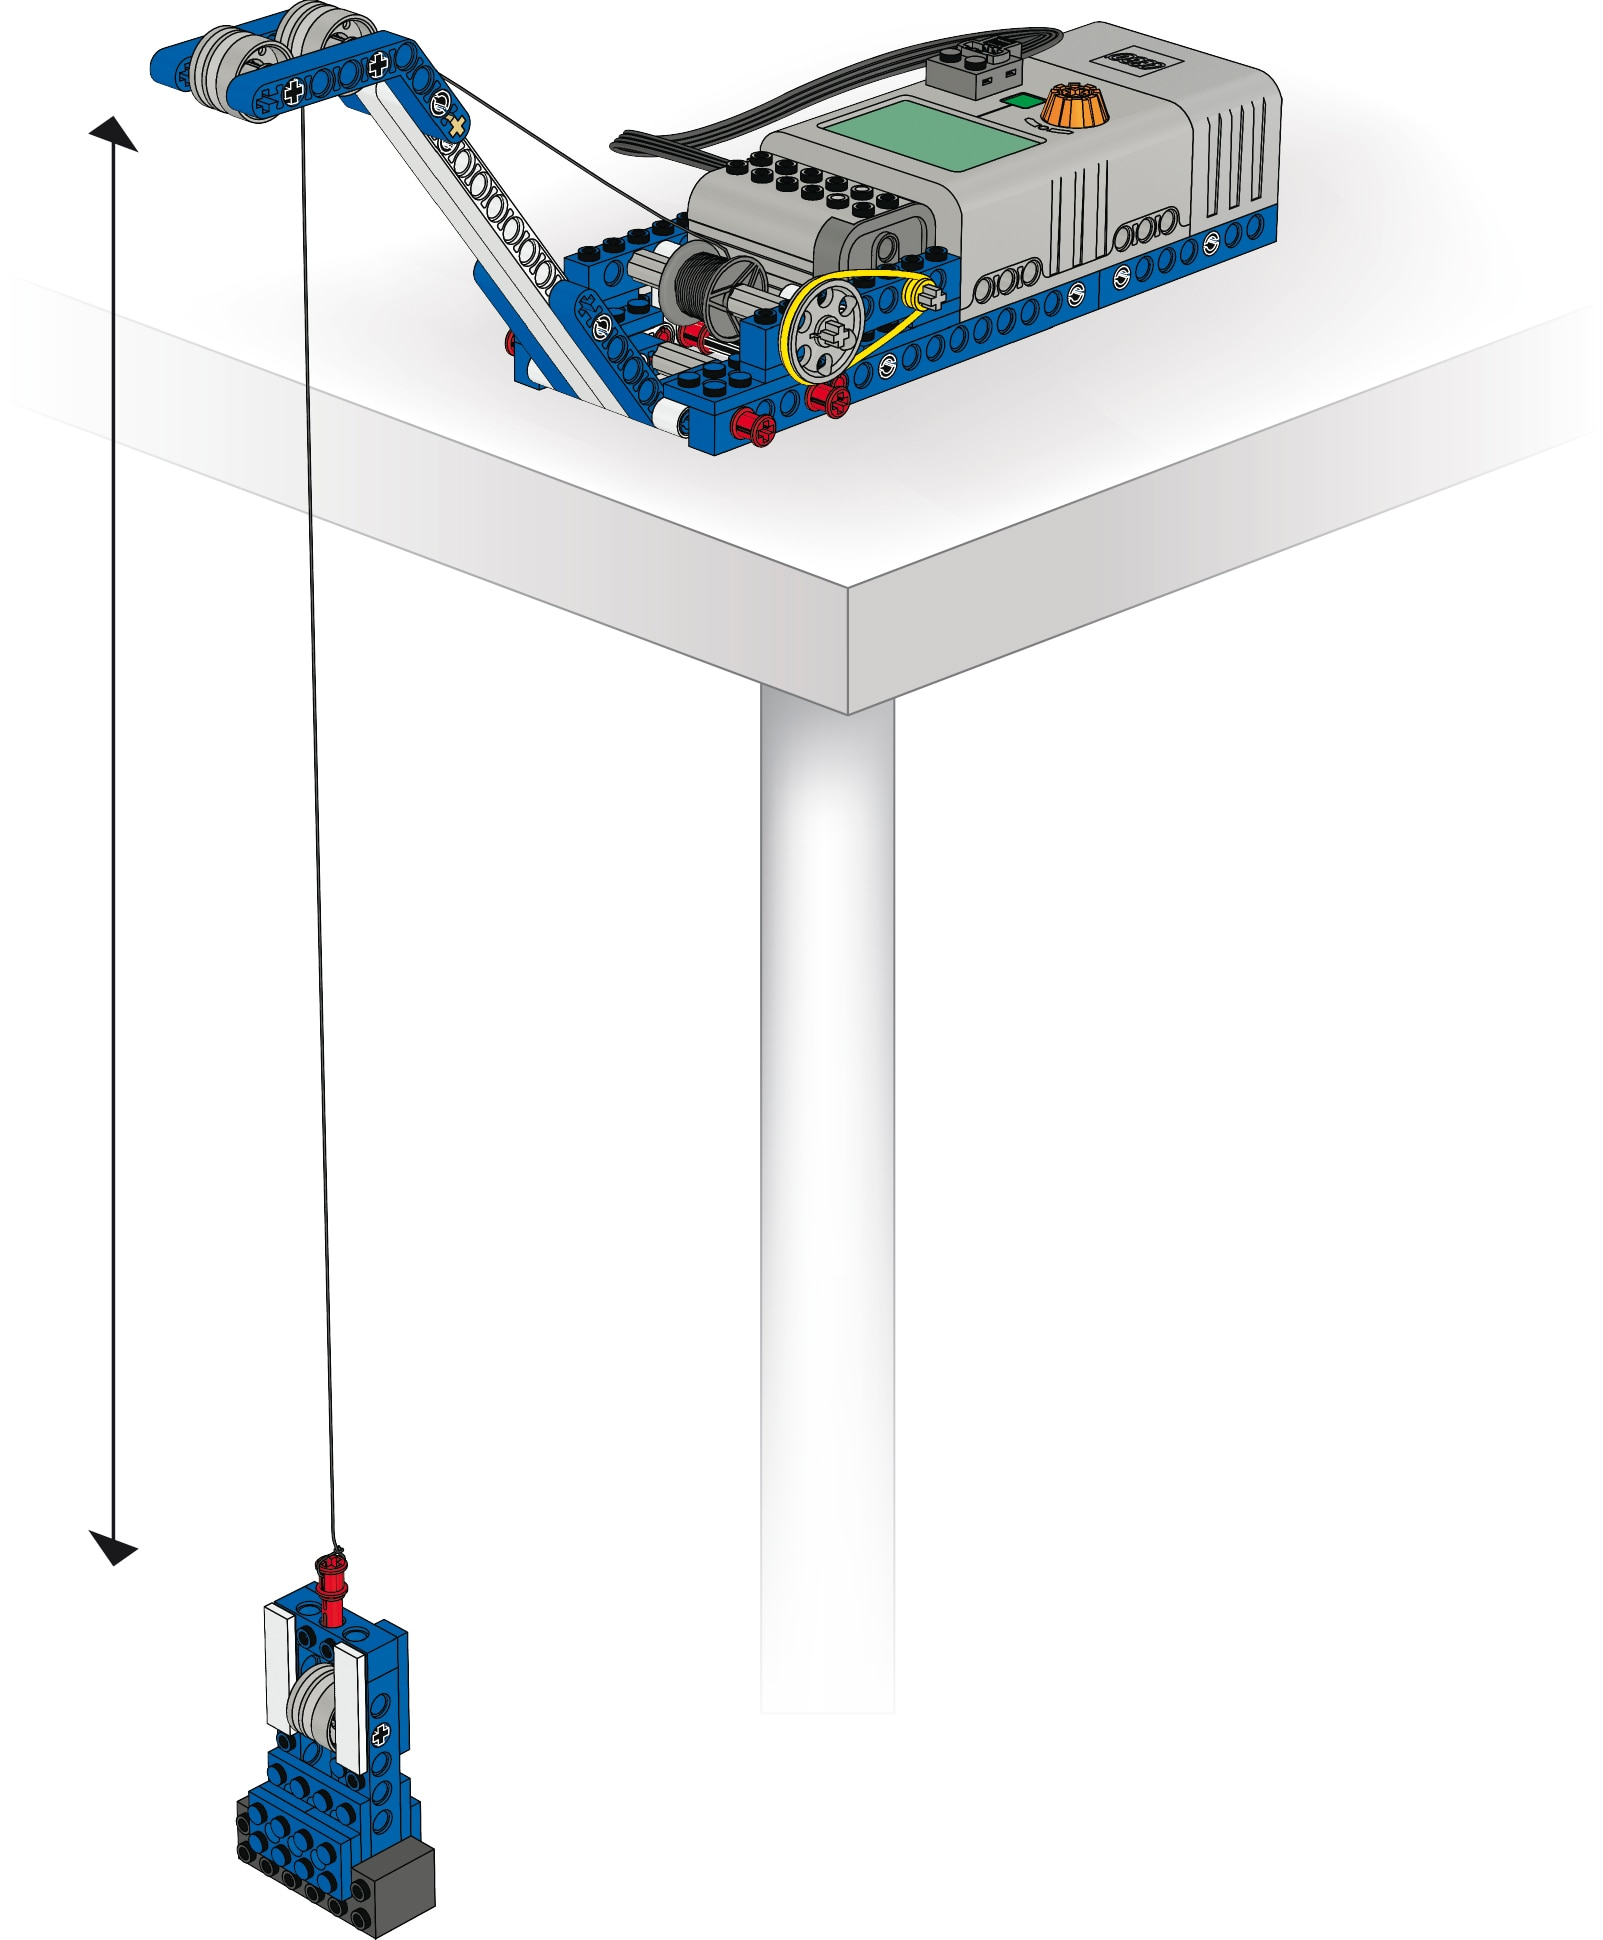 Boat Pulley - Renewable Energy - Lesson Plans - LEGO Education